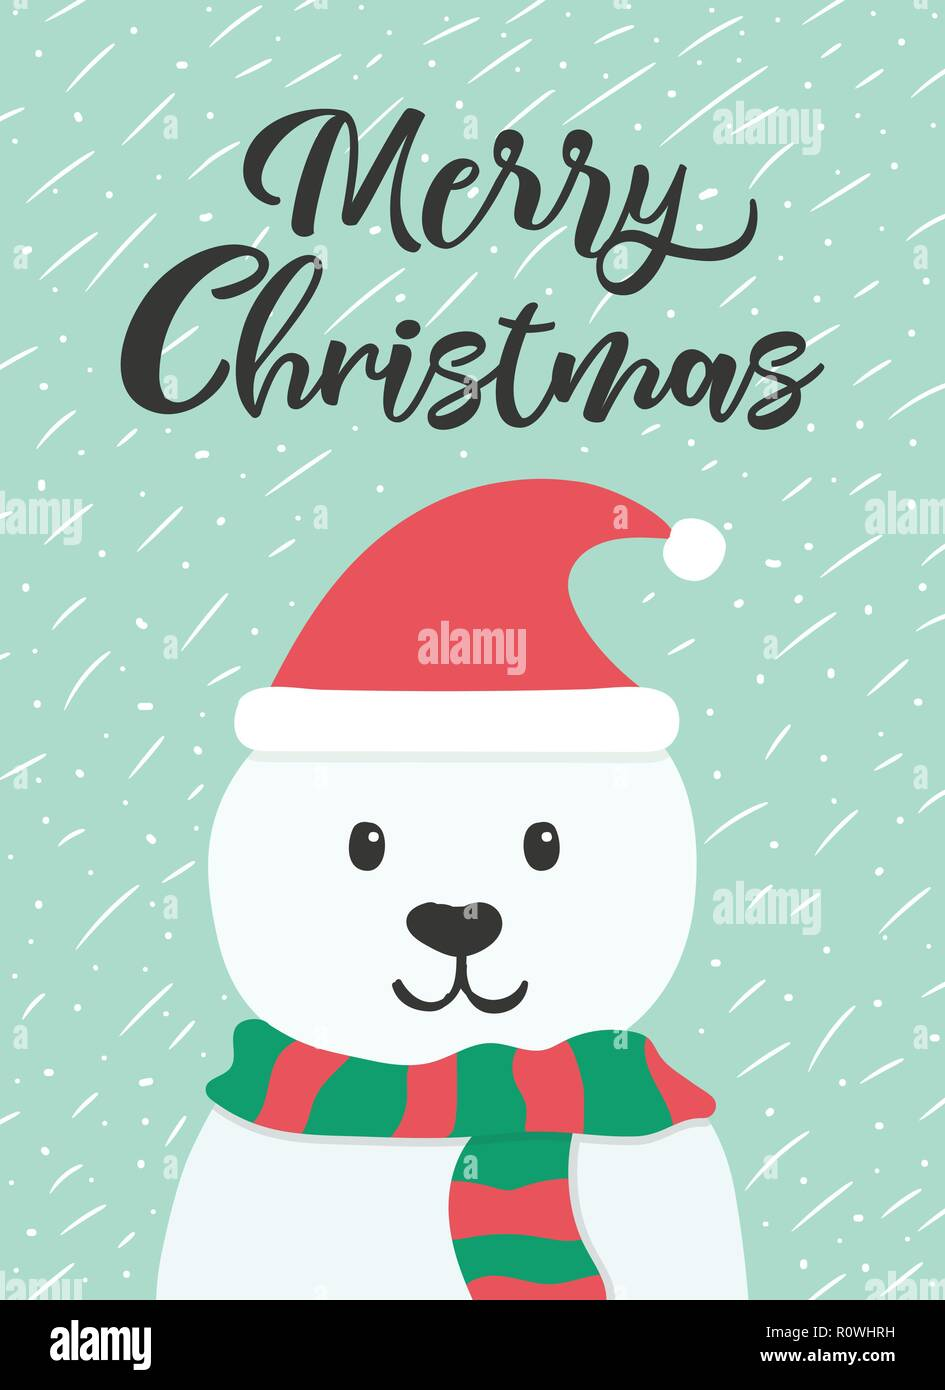 christmas and new year greeting or invitation card white cute bear with hat and scarf on winter background vector illustration